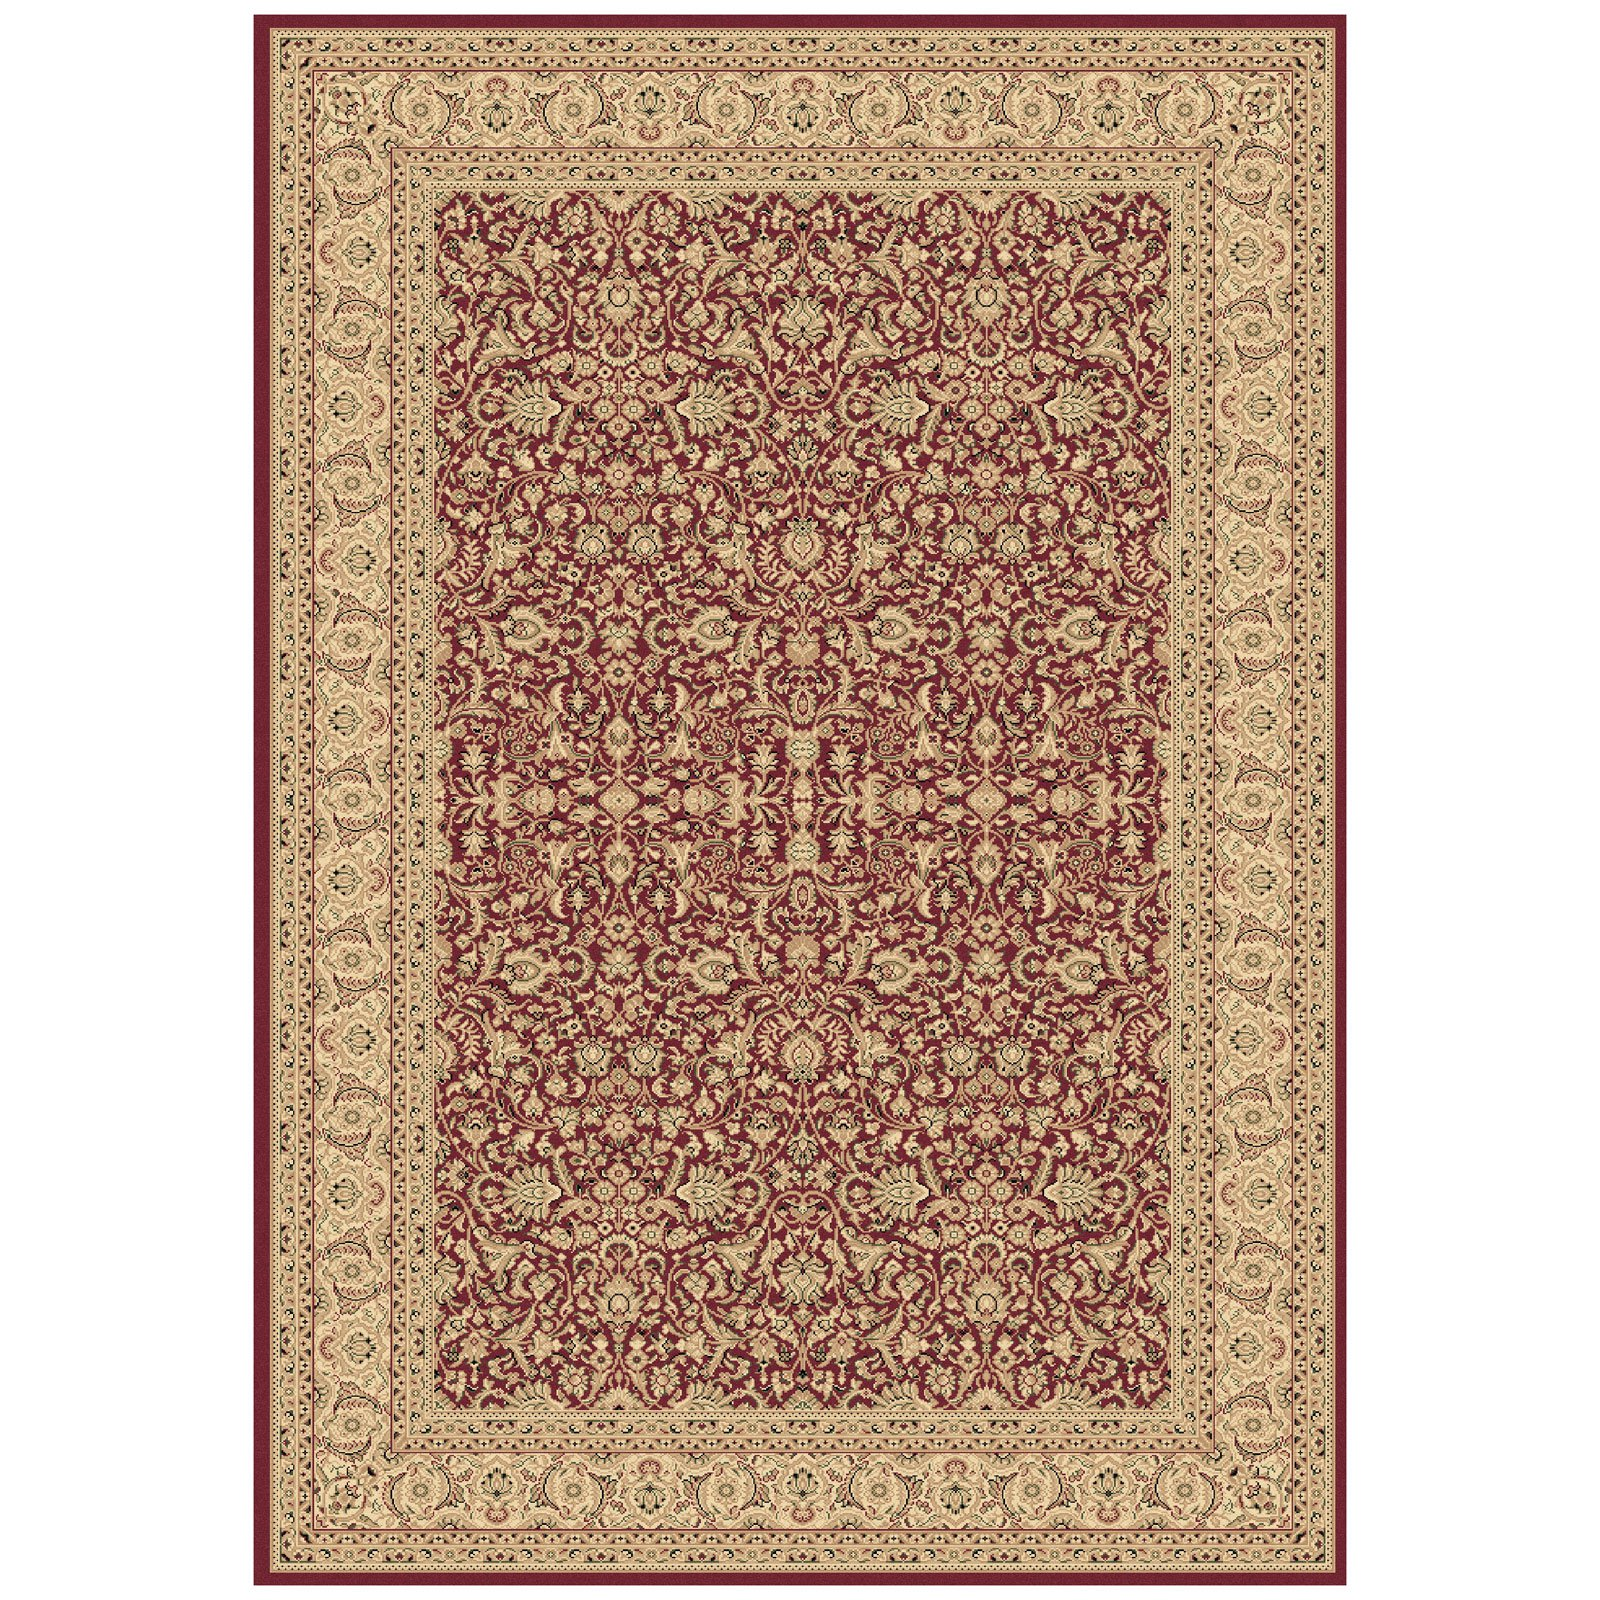 Dynamic Rugs Legacy 58004 All-Over Persian Rug - Red